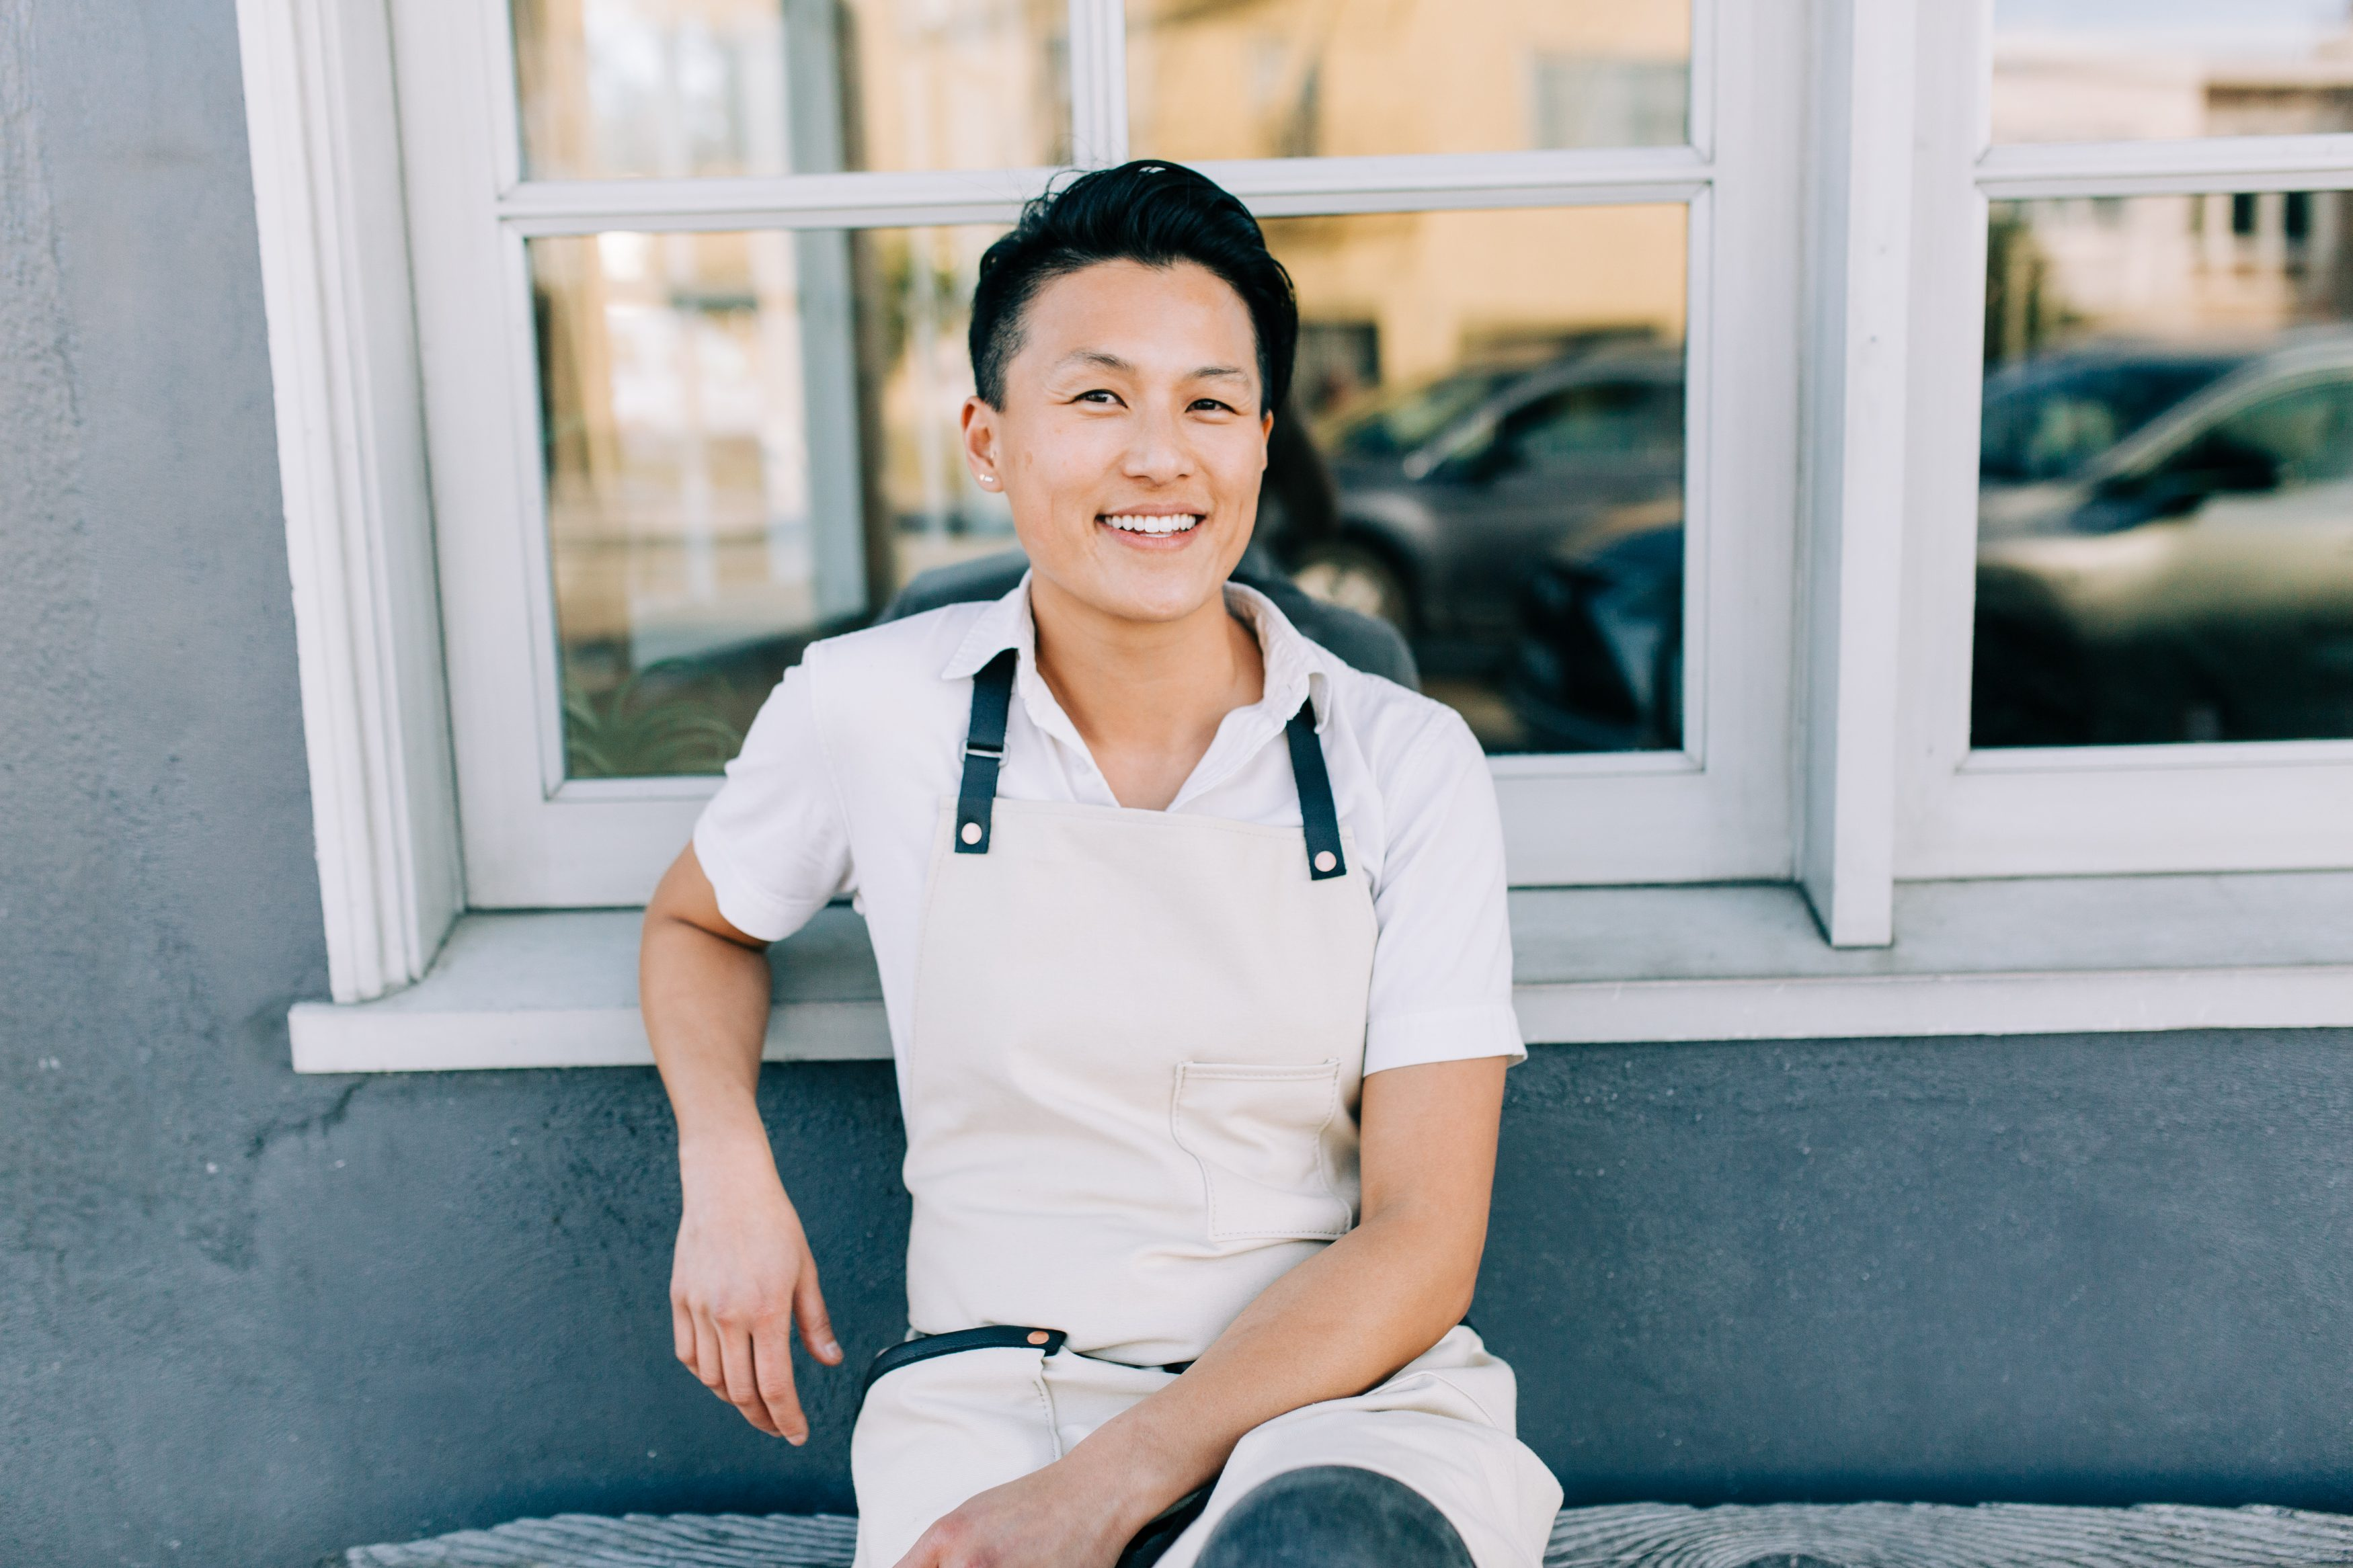 Chef Melissa's Picture, sitting in front a window smiling